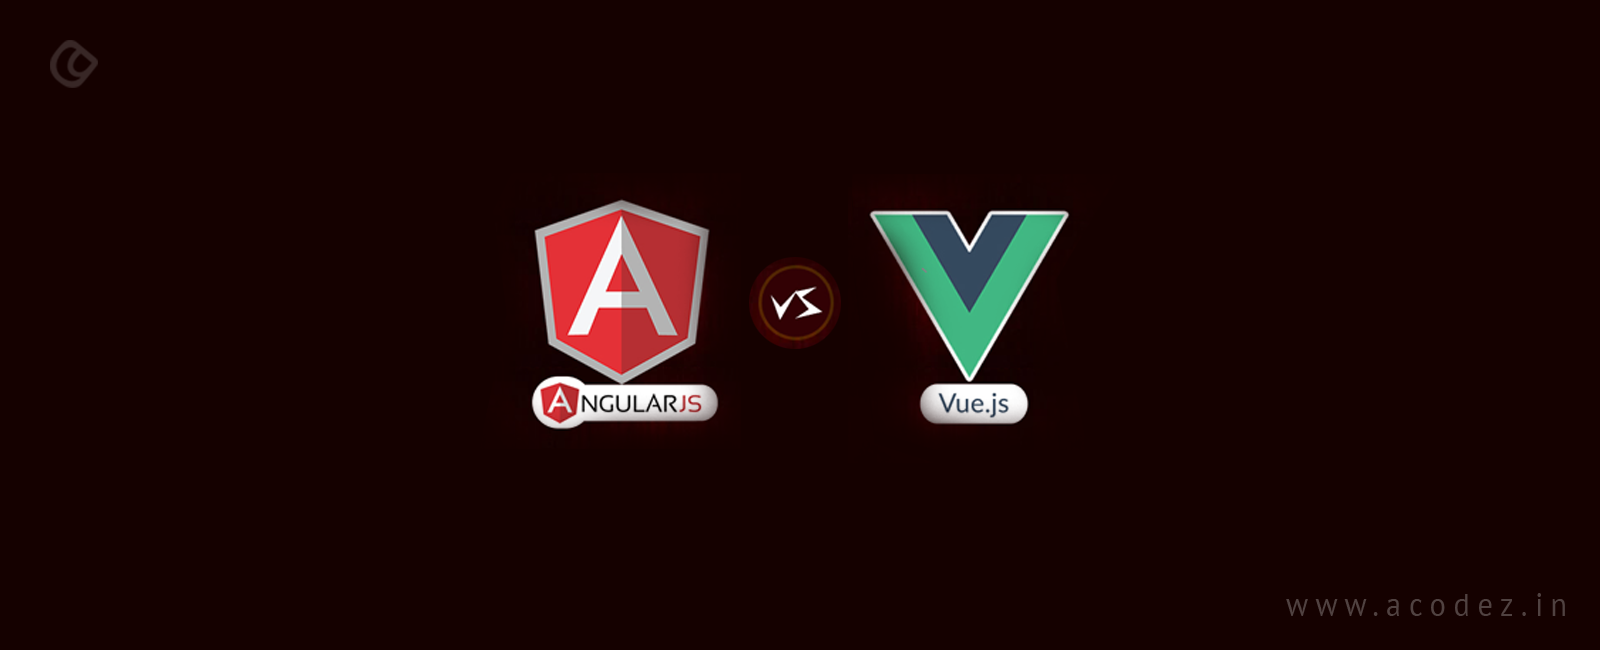 Angular JS vs Vue JS : Which One is The Better Framework?